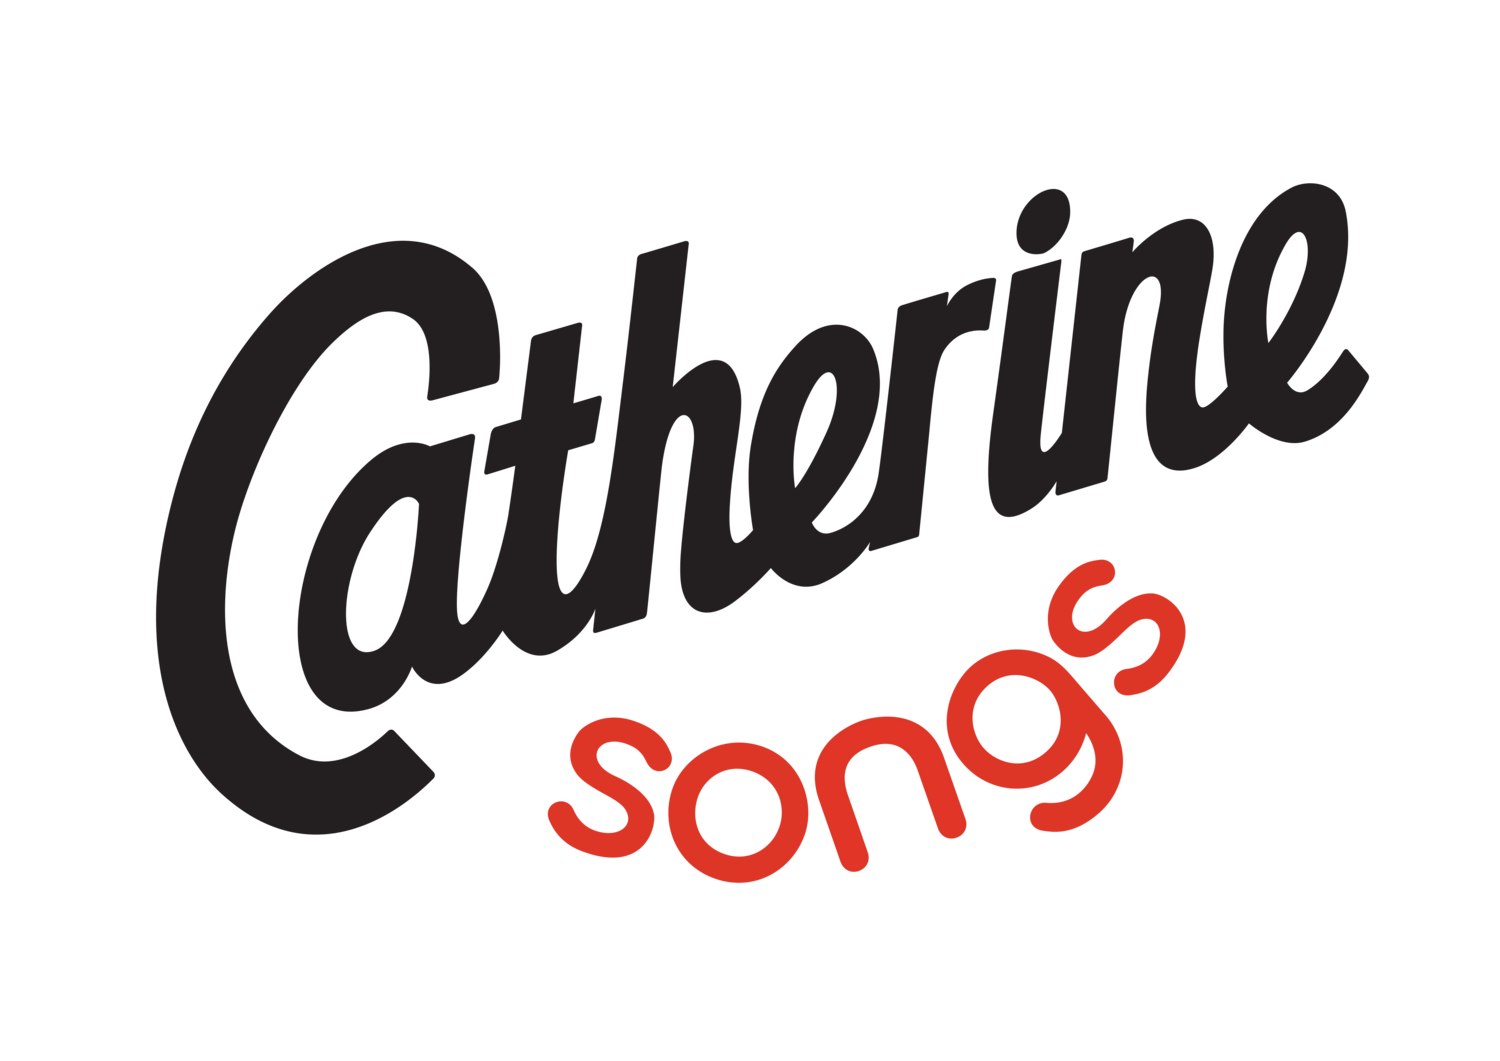 Catherine Songs